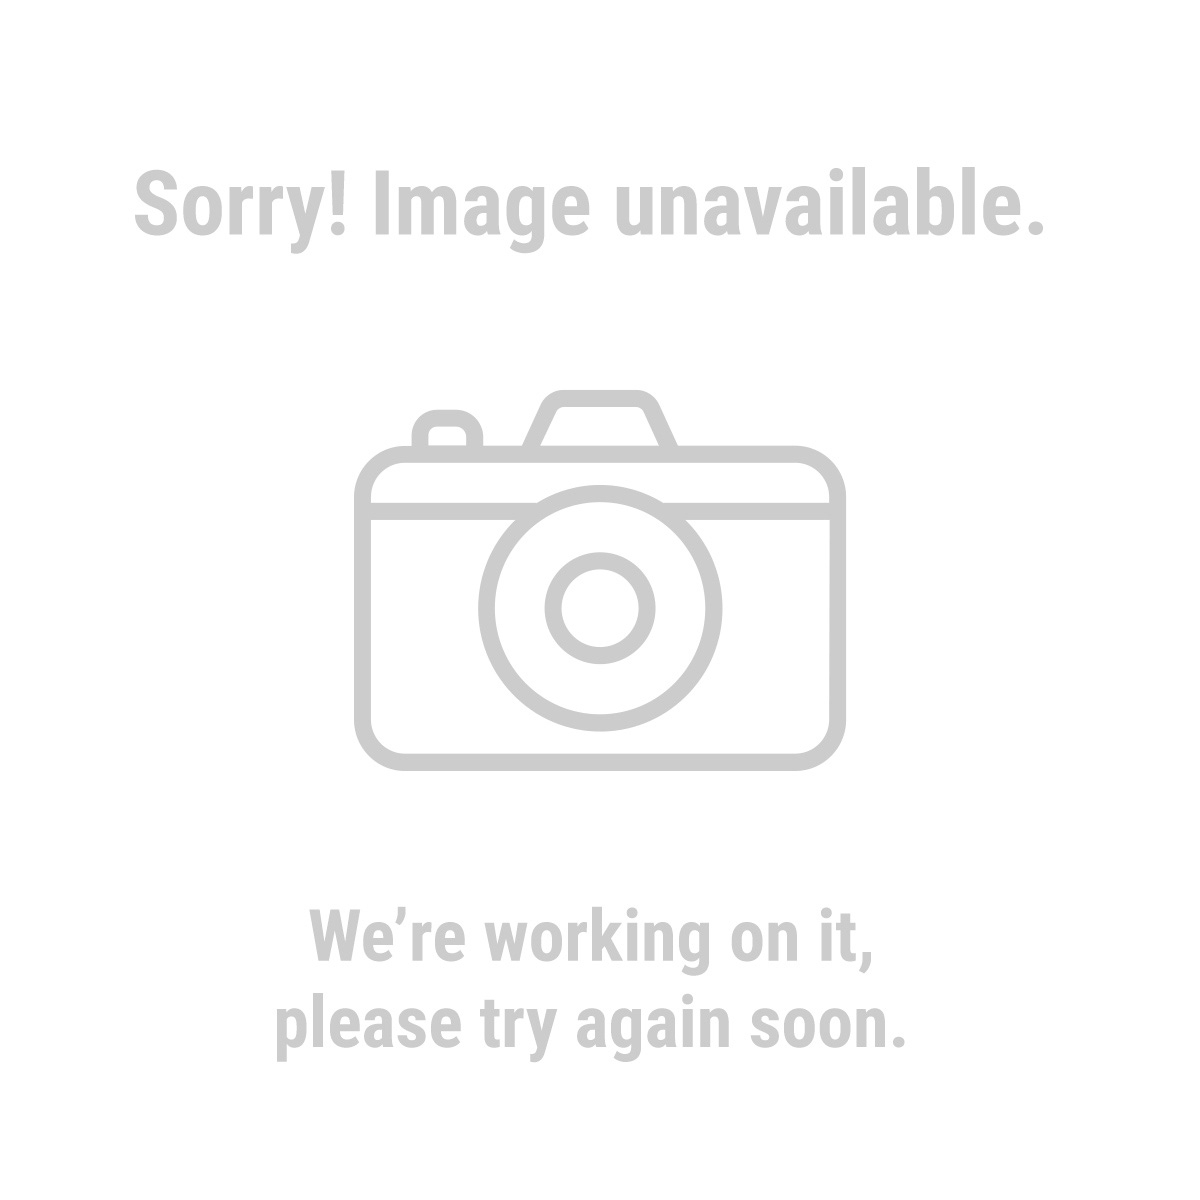 Warrior® 68871 7 Piece Three-Wing Slotting Cutter Router Bit Set